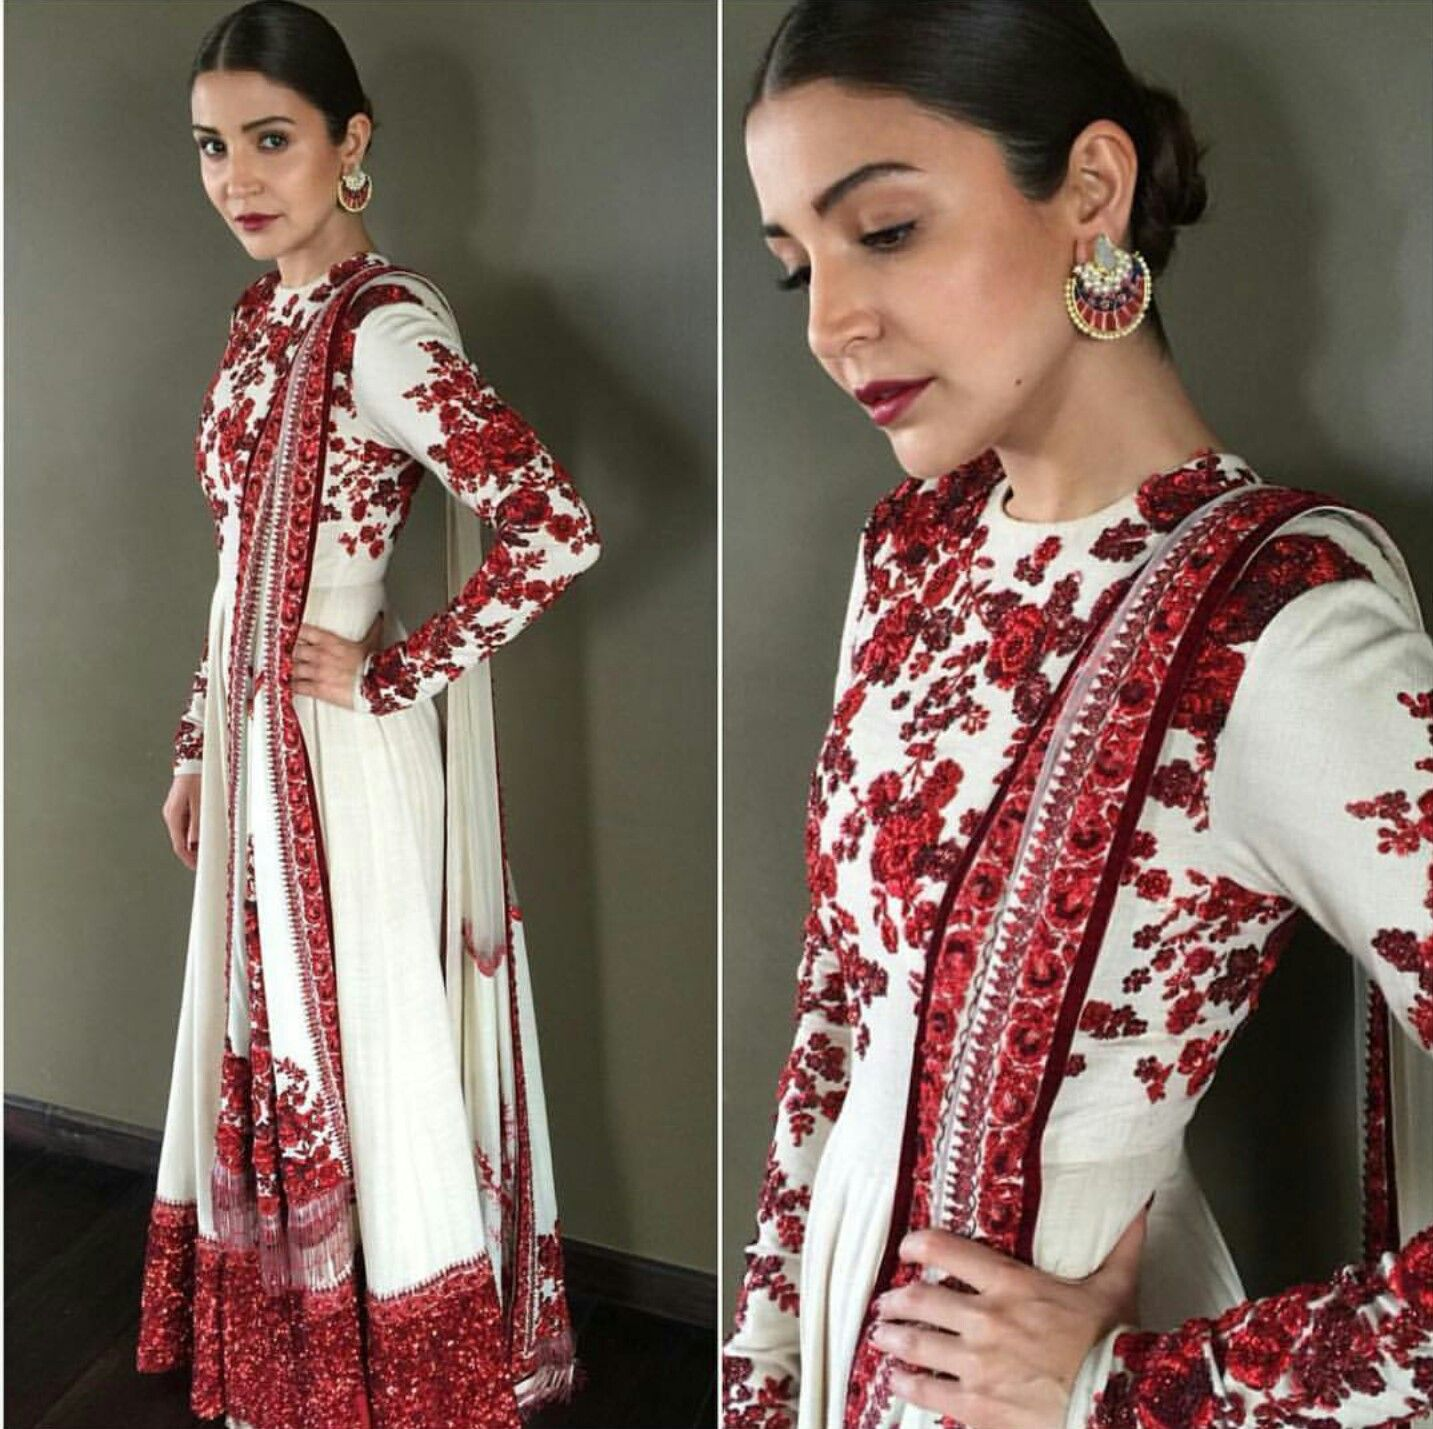 601d526a114 Anushka Sharma wearing red and white Sabyasachi traditional outfit for  Sultan Promotions